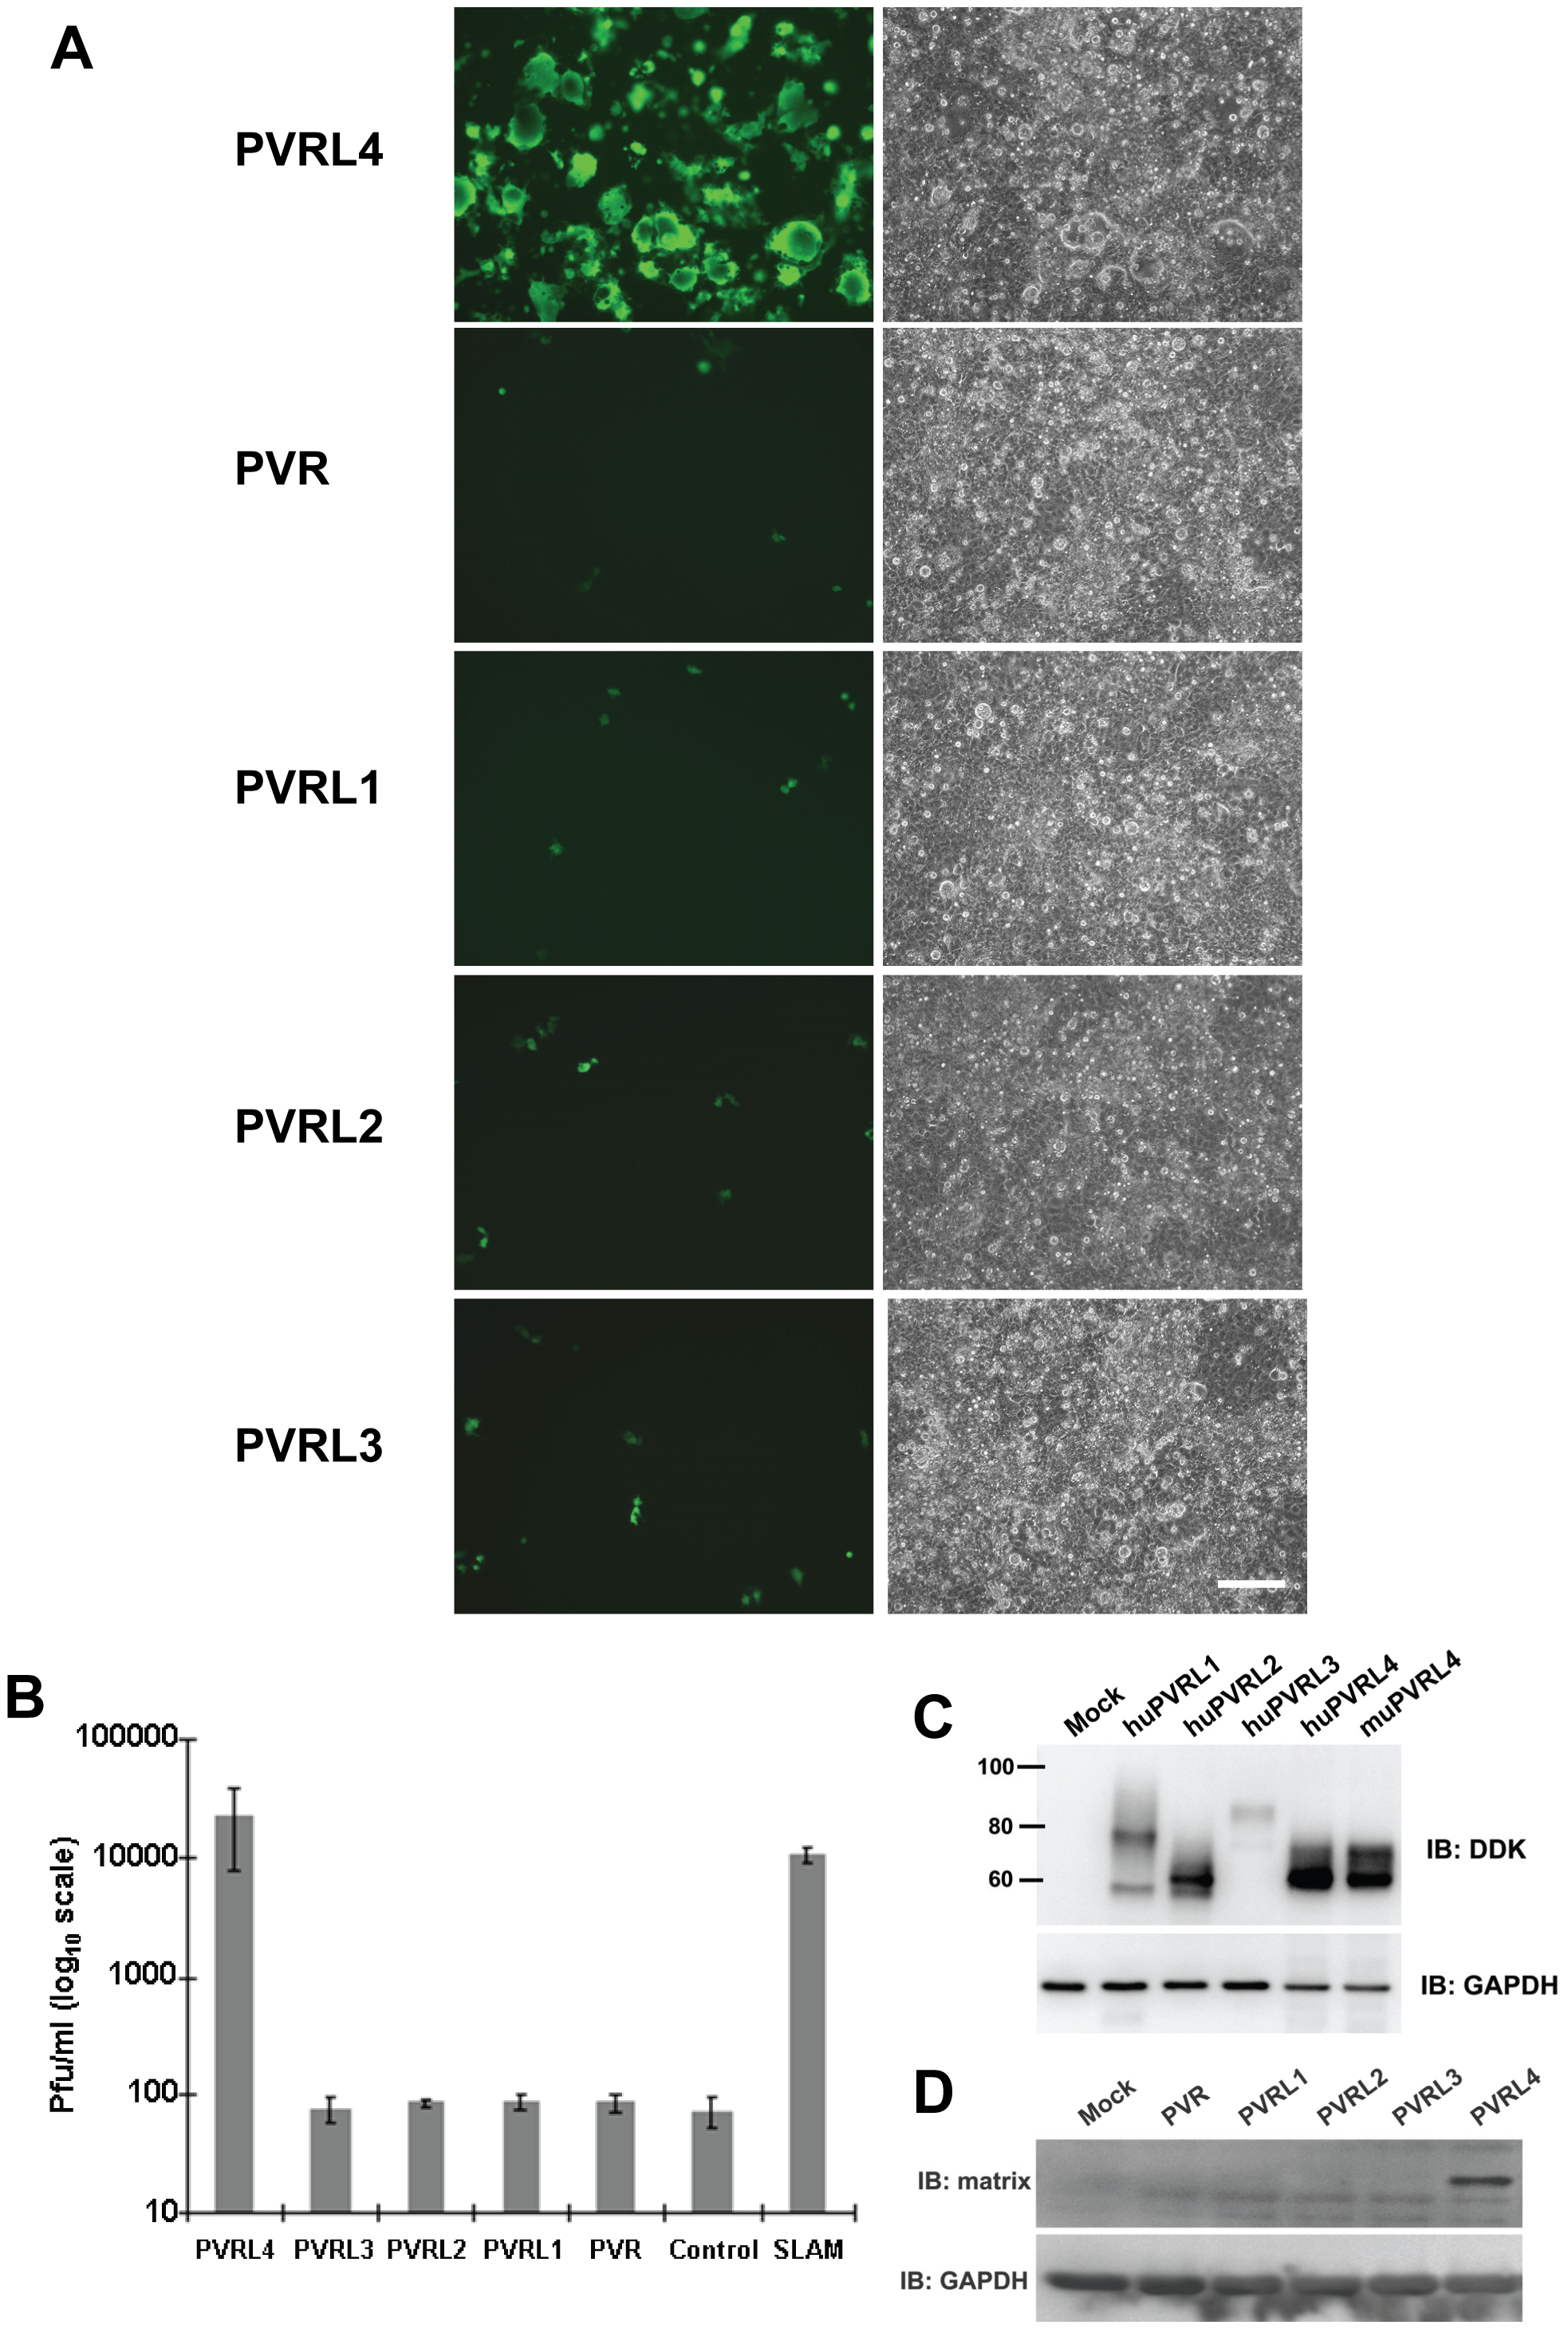 Nectins closely related to PVRL4 cannot function as receptors for wtMV.